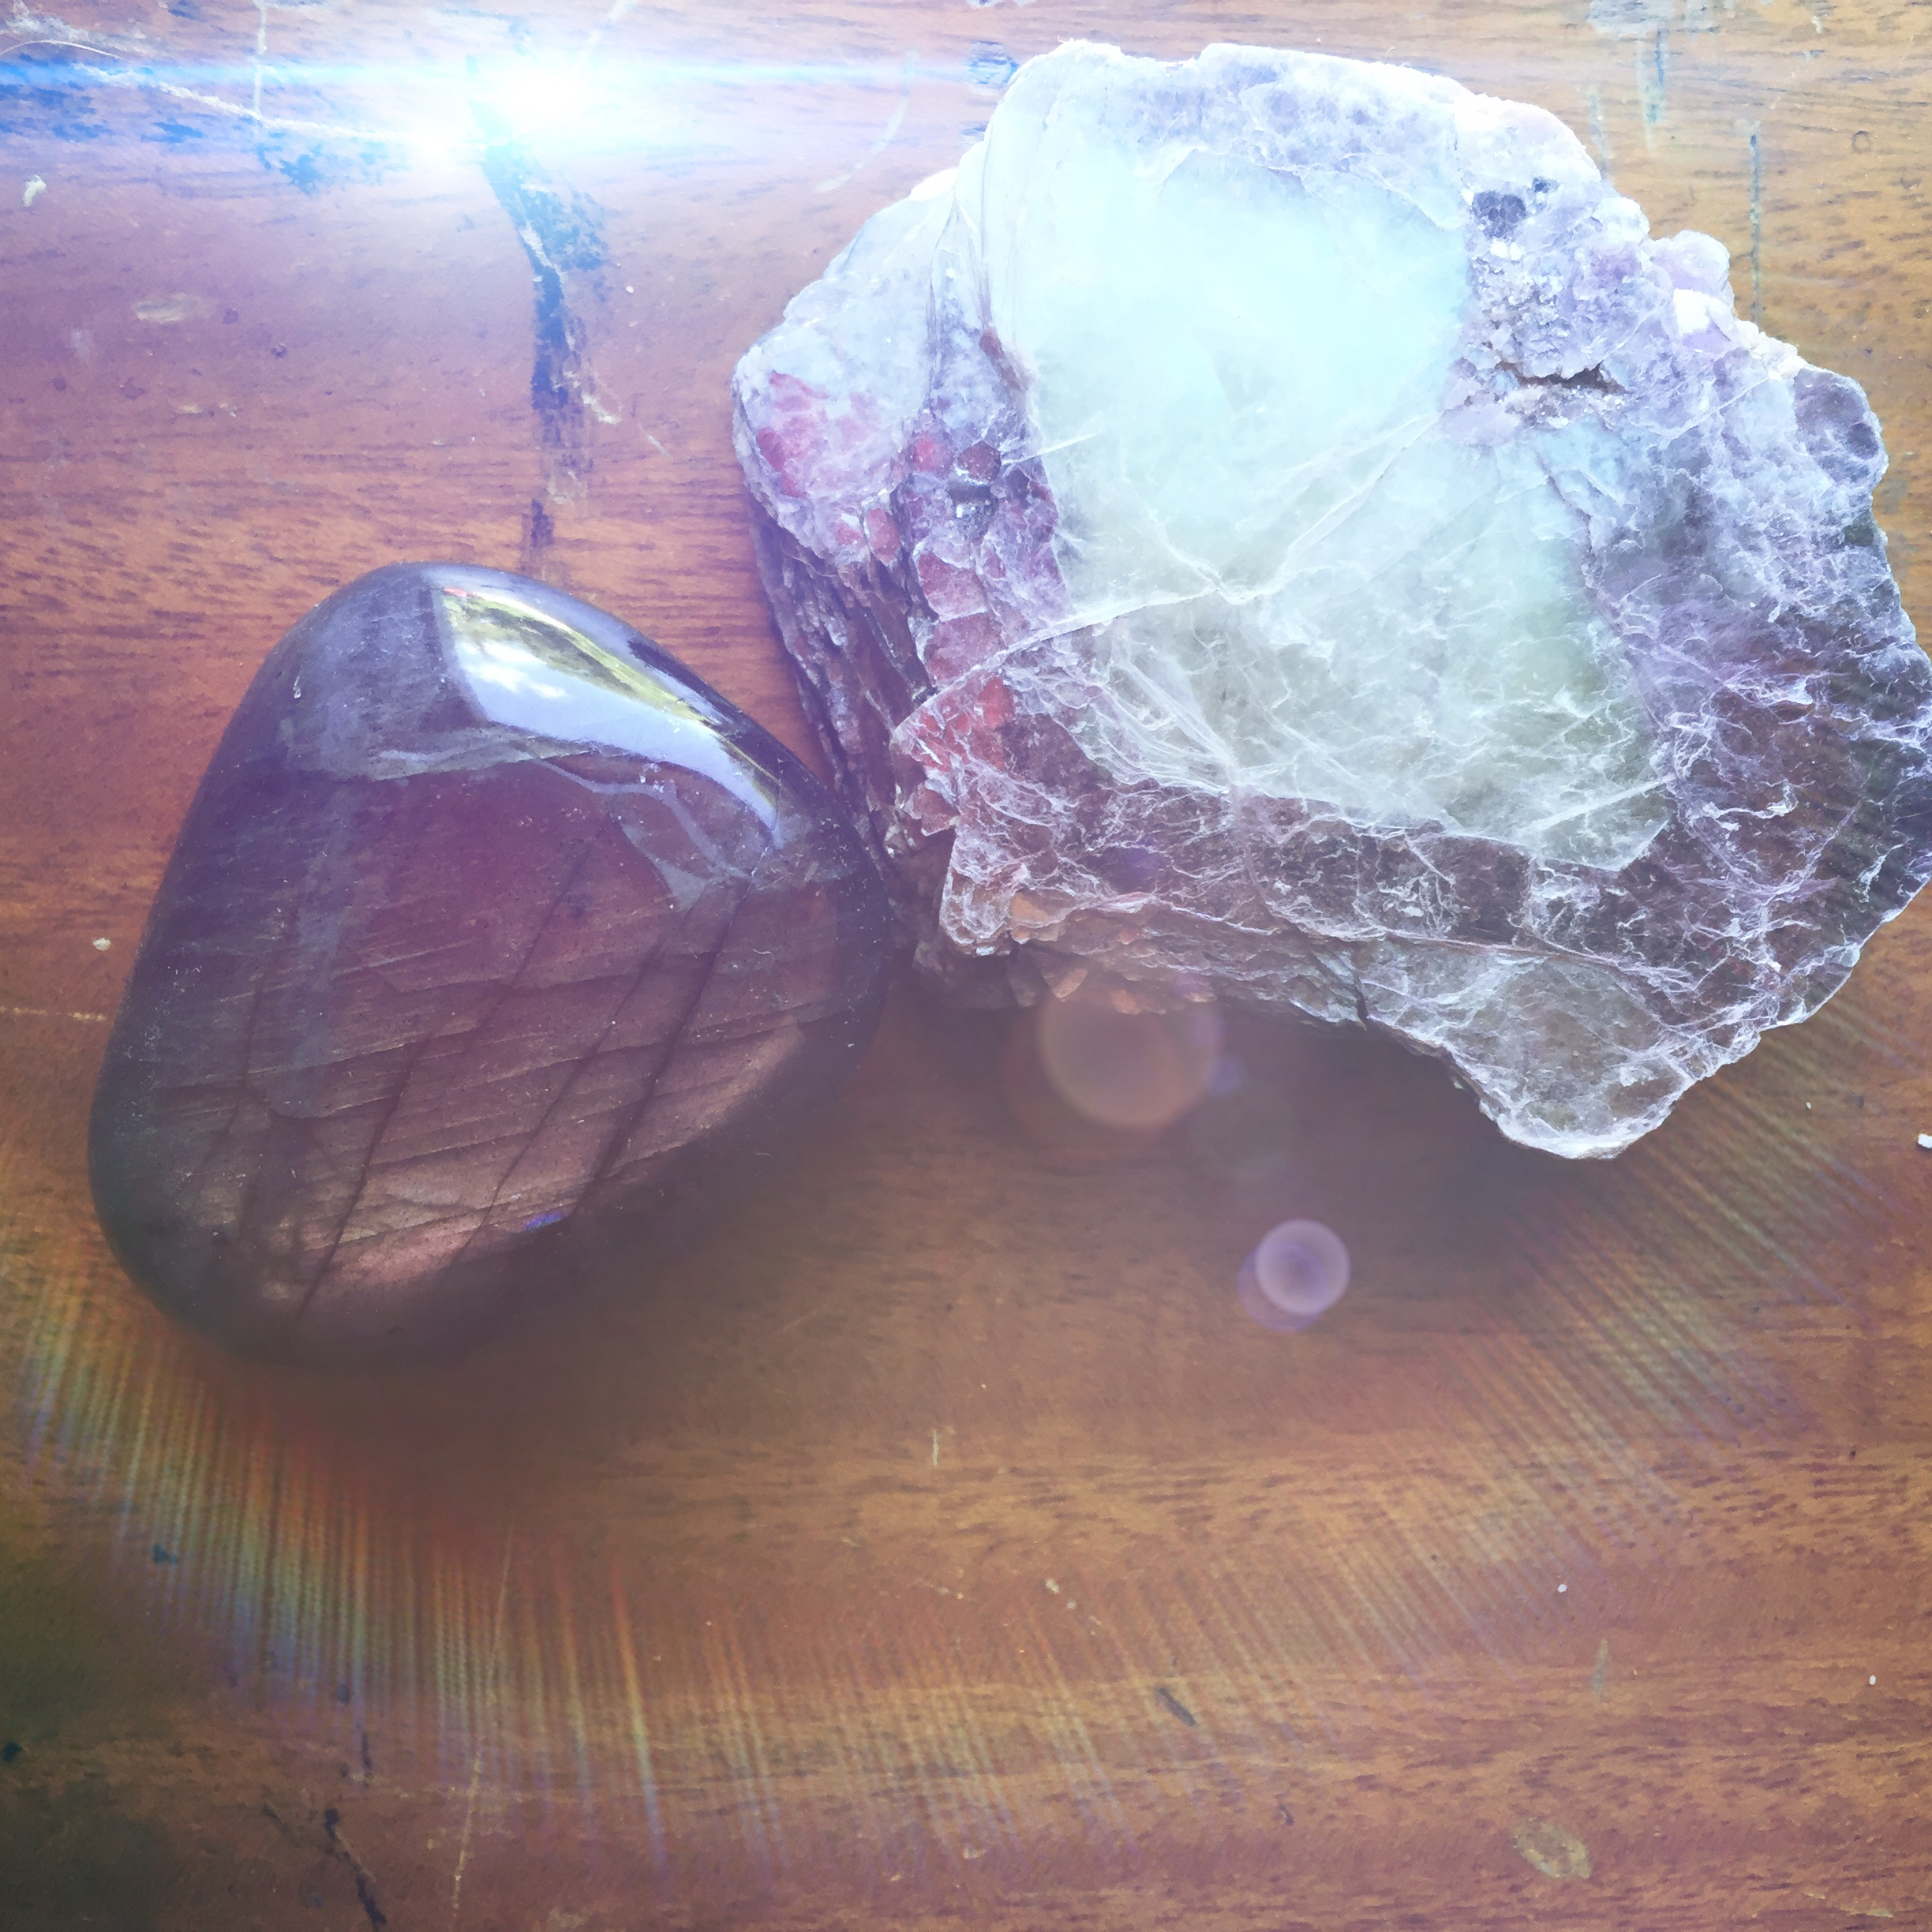 Labradorite (left) and Lepidolite (right) are great crystals for restoring inner peace. The colorful sheen Labradorite offers is enough to distract your mind from all frustration.